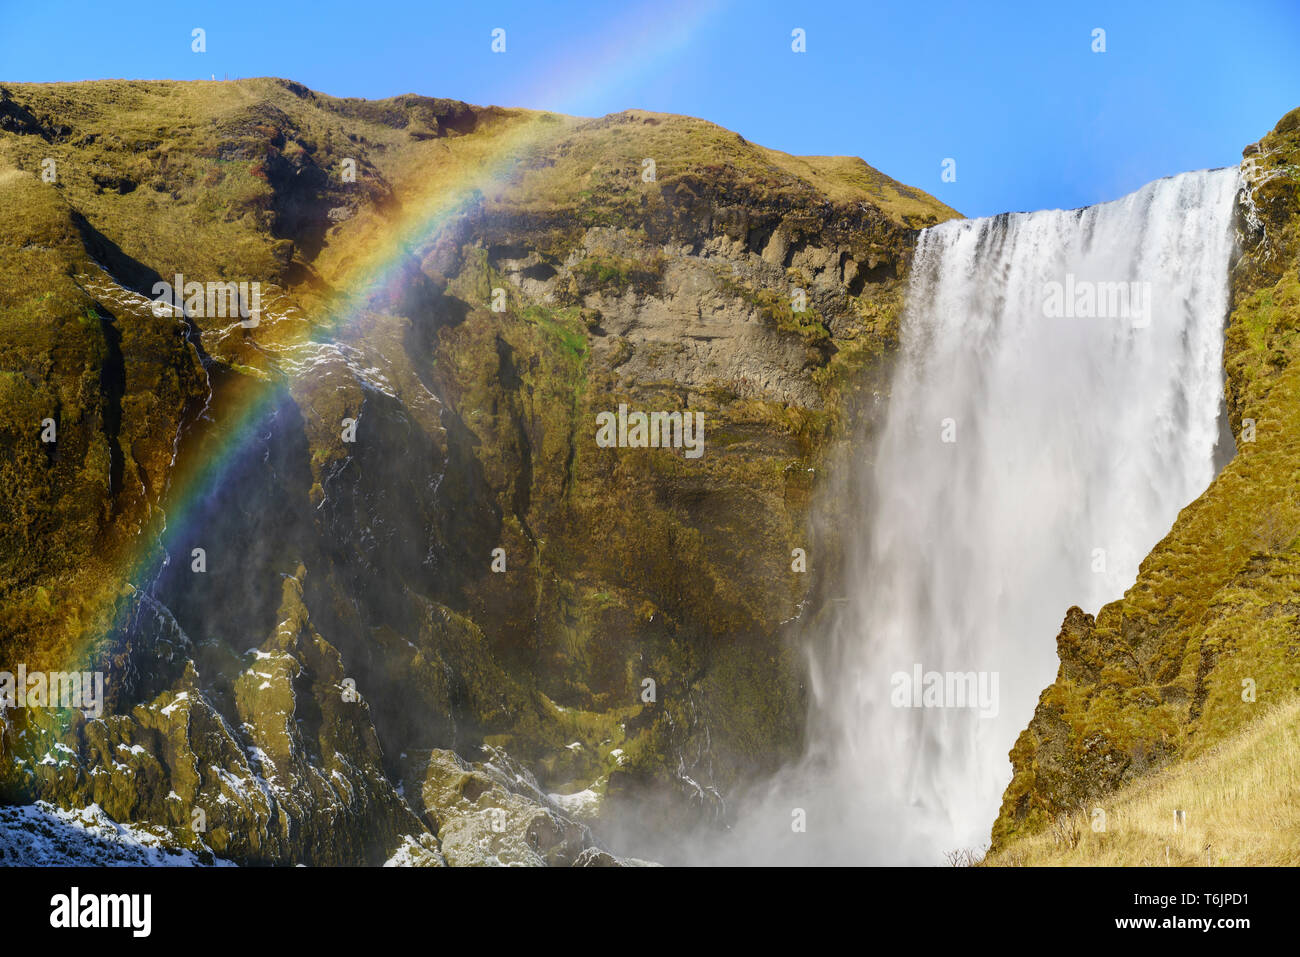 View of the impressing Skógafoss with its rainbow - Stock Image